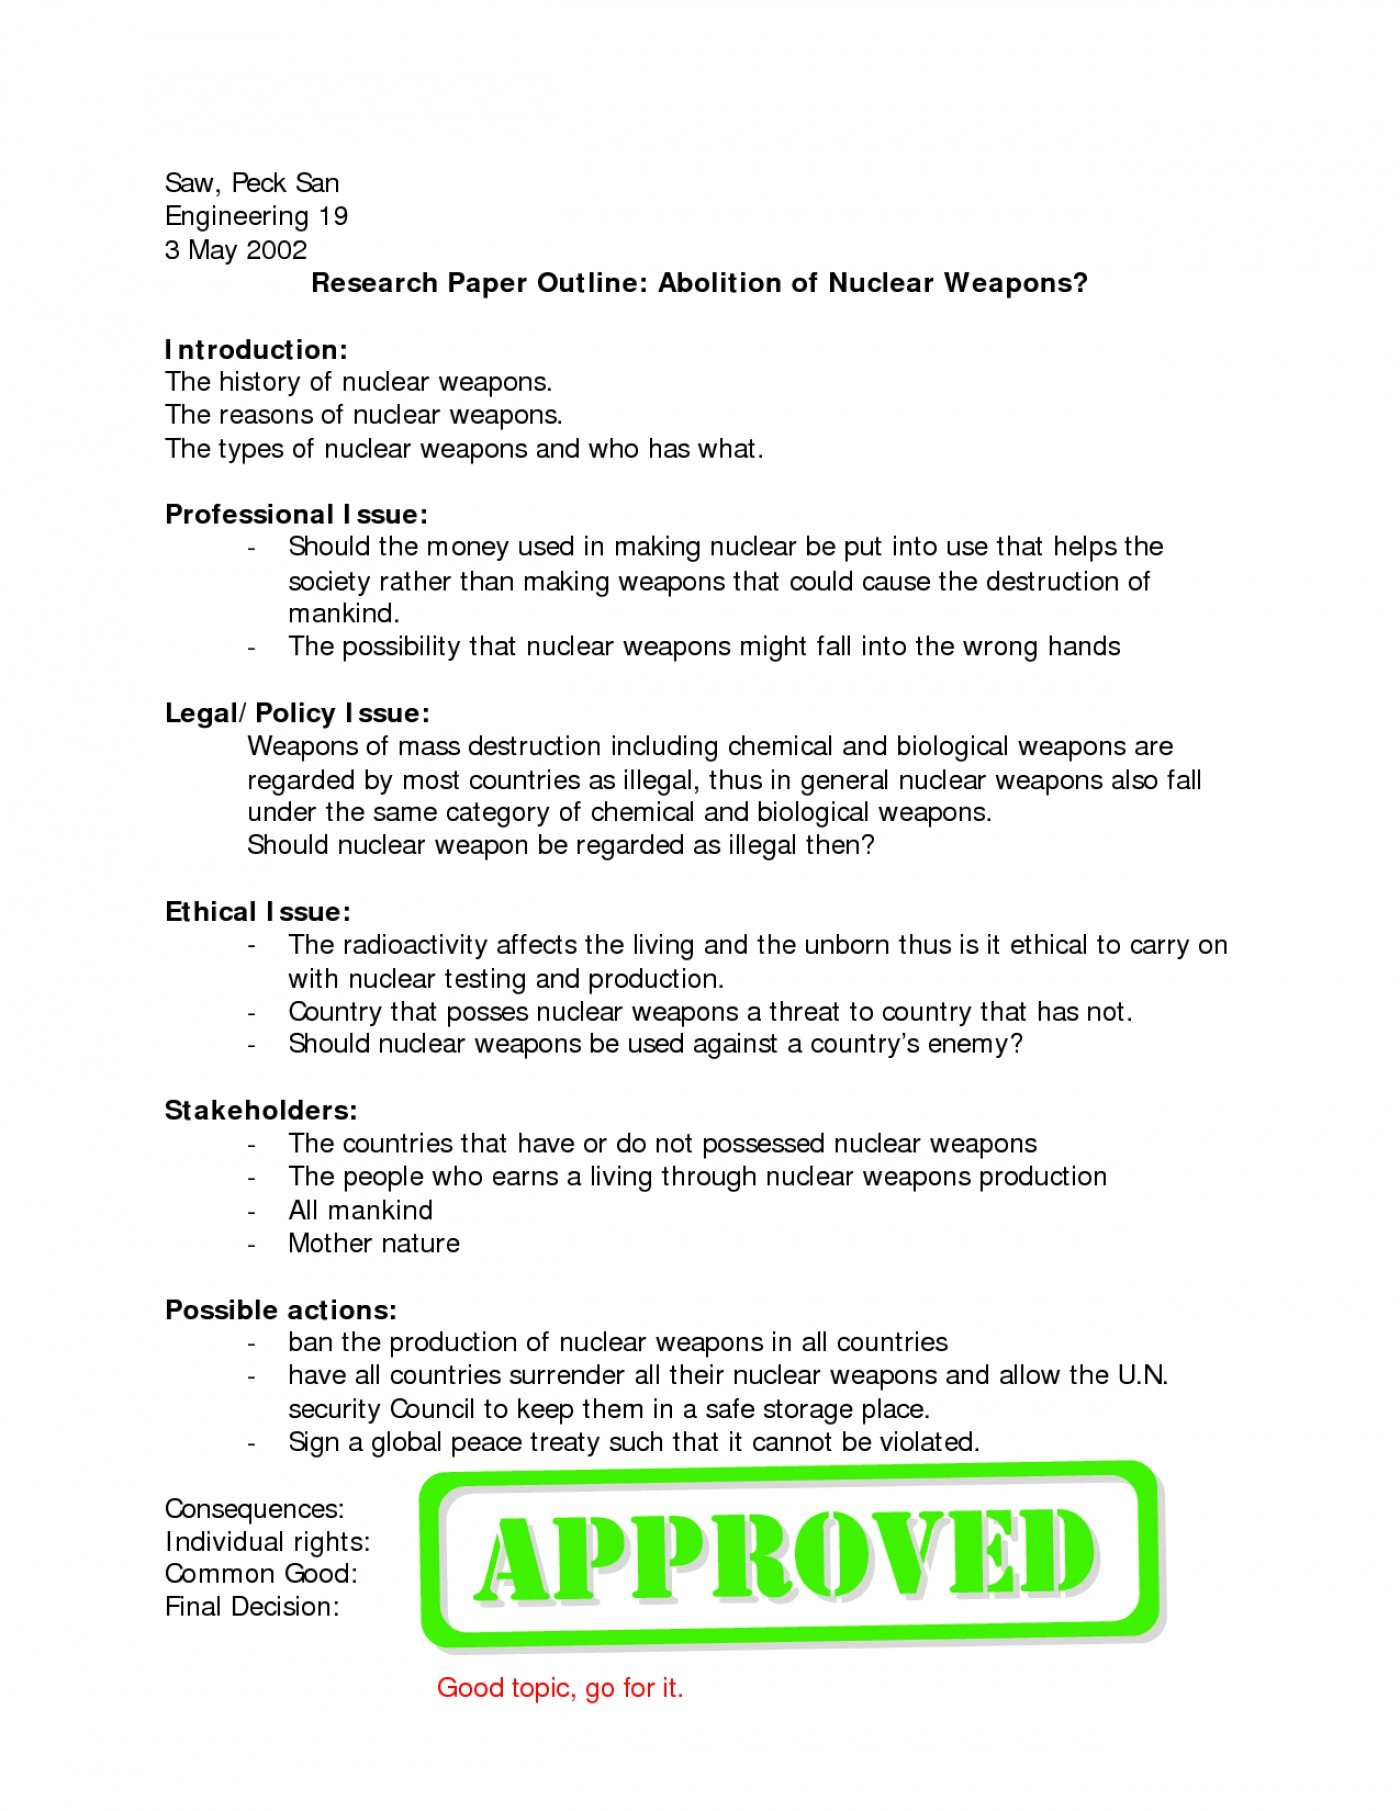 English Essay Writing Help  Performance Management Essay also Federalism Essay Paper  Online Writing Lab History Term Paper Outlinert Essay  Business Law Essays